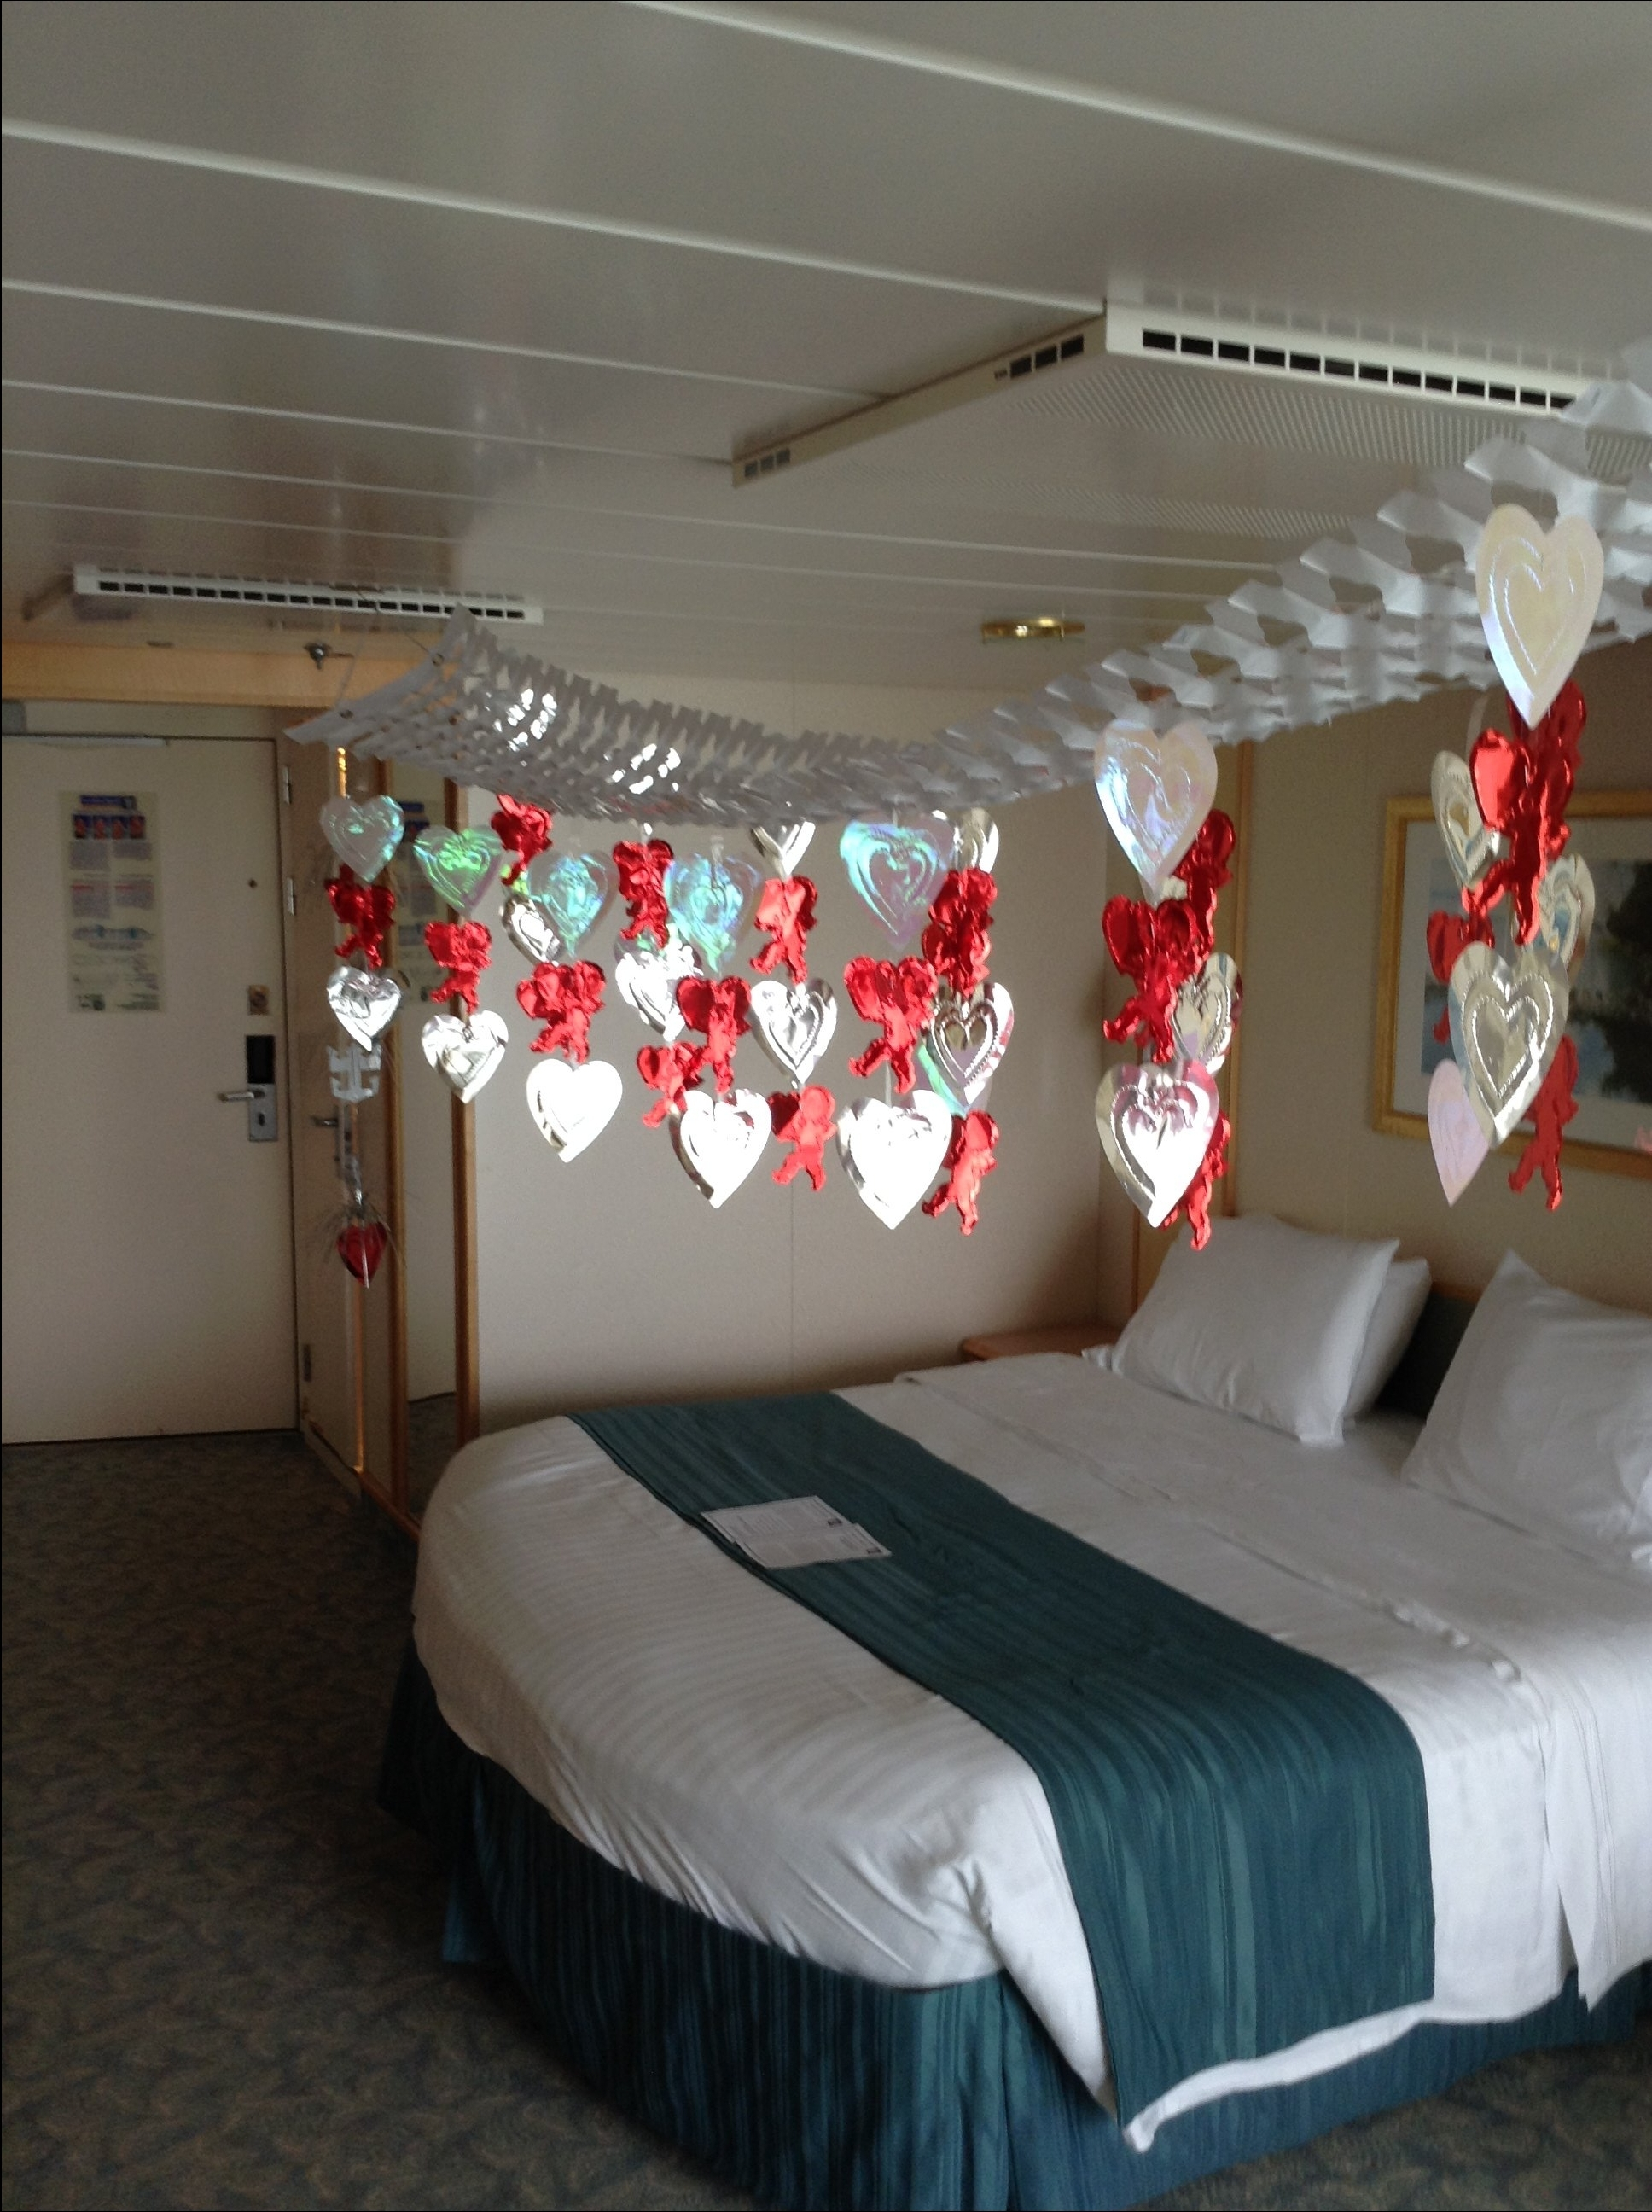 Freedom Of The Seas Cruise Review May 11 2014 Seriously Stateroom Decorations Congratulating Our 45th Wedding